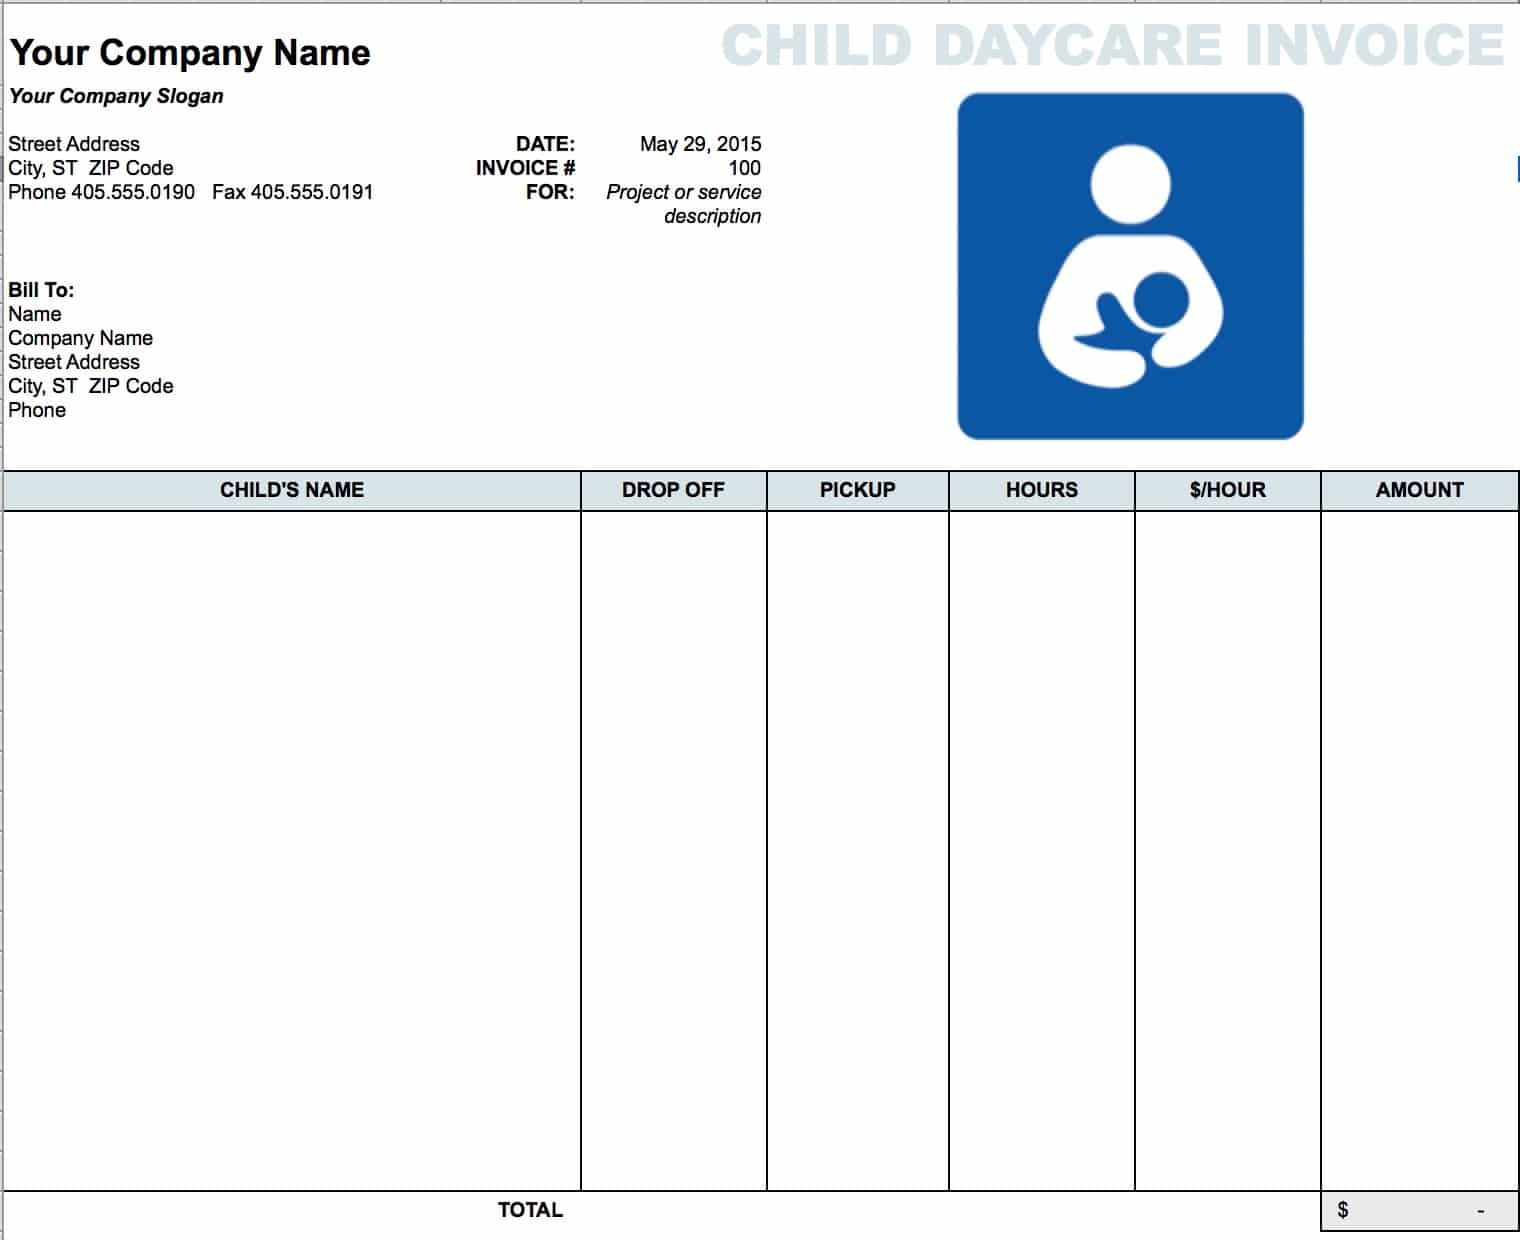 Free Daycare Child Invoice Template Excel PDF Word Doc - Business invoice template pdf baby stores online